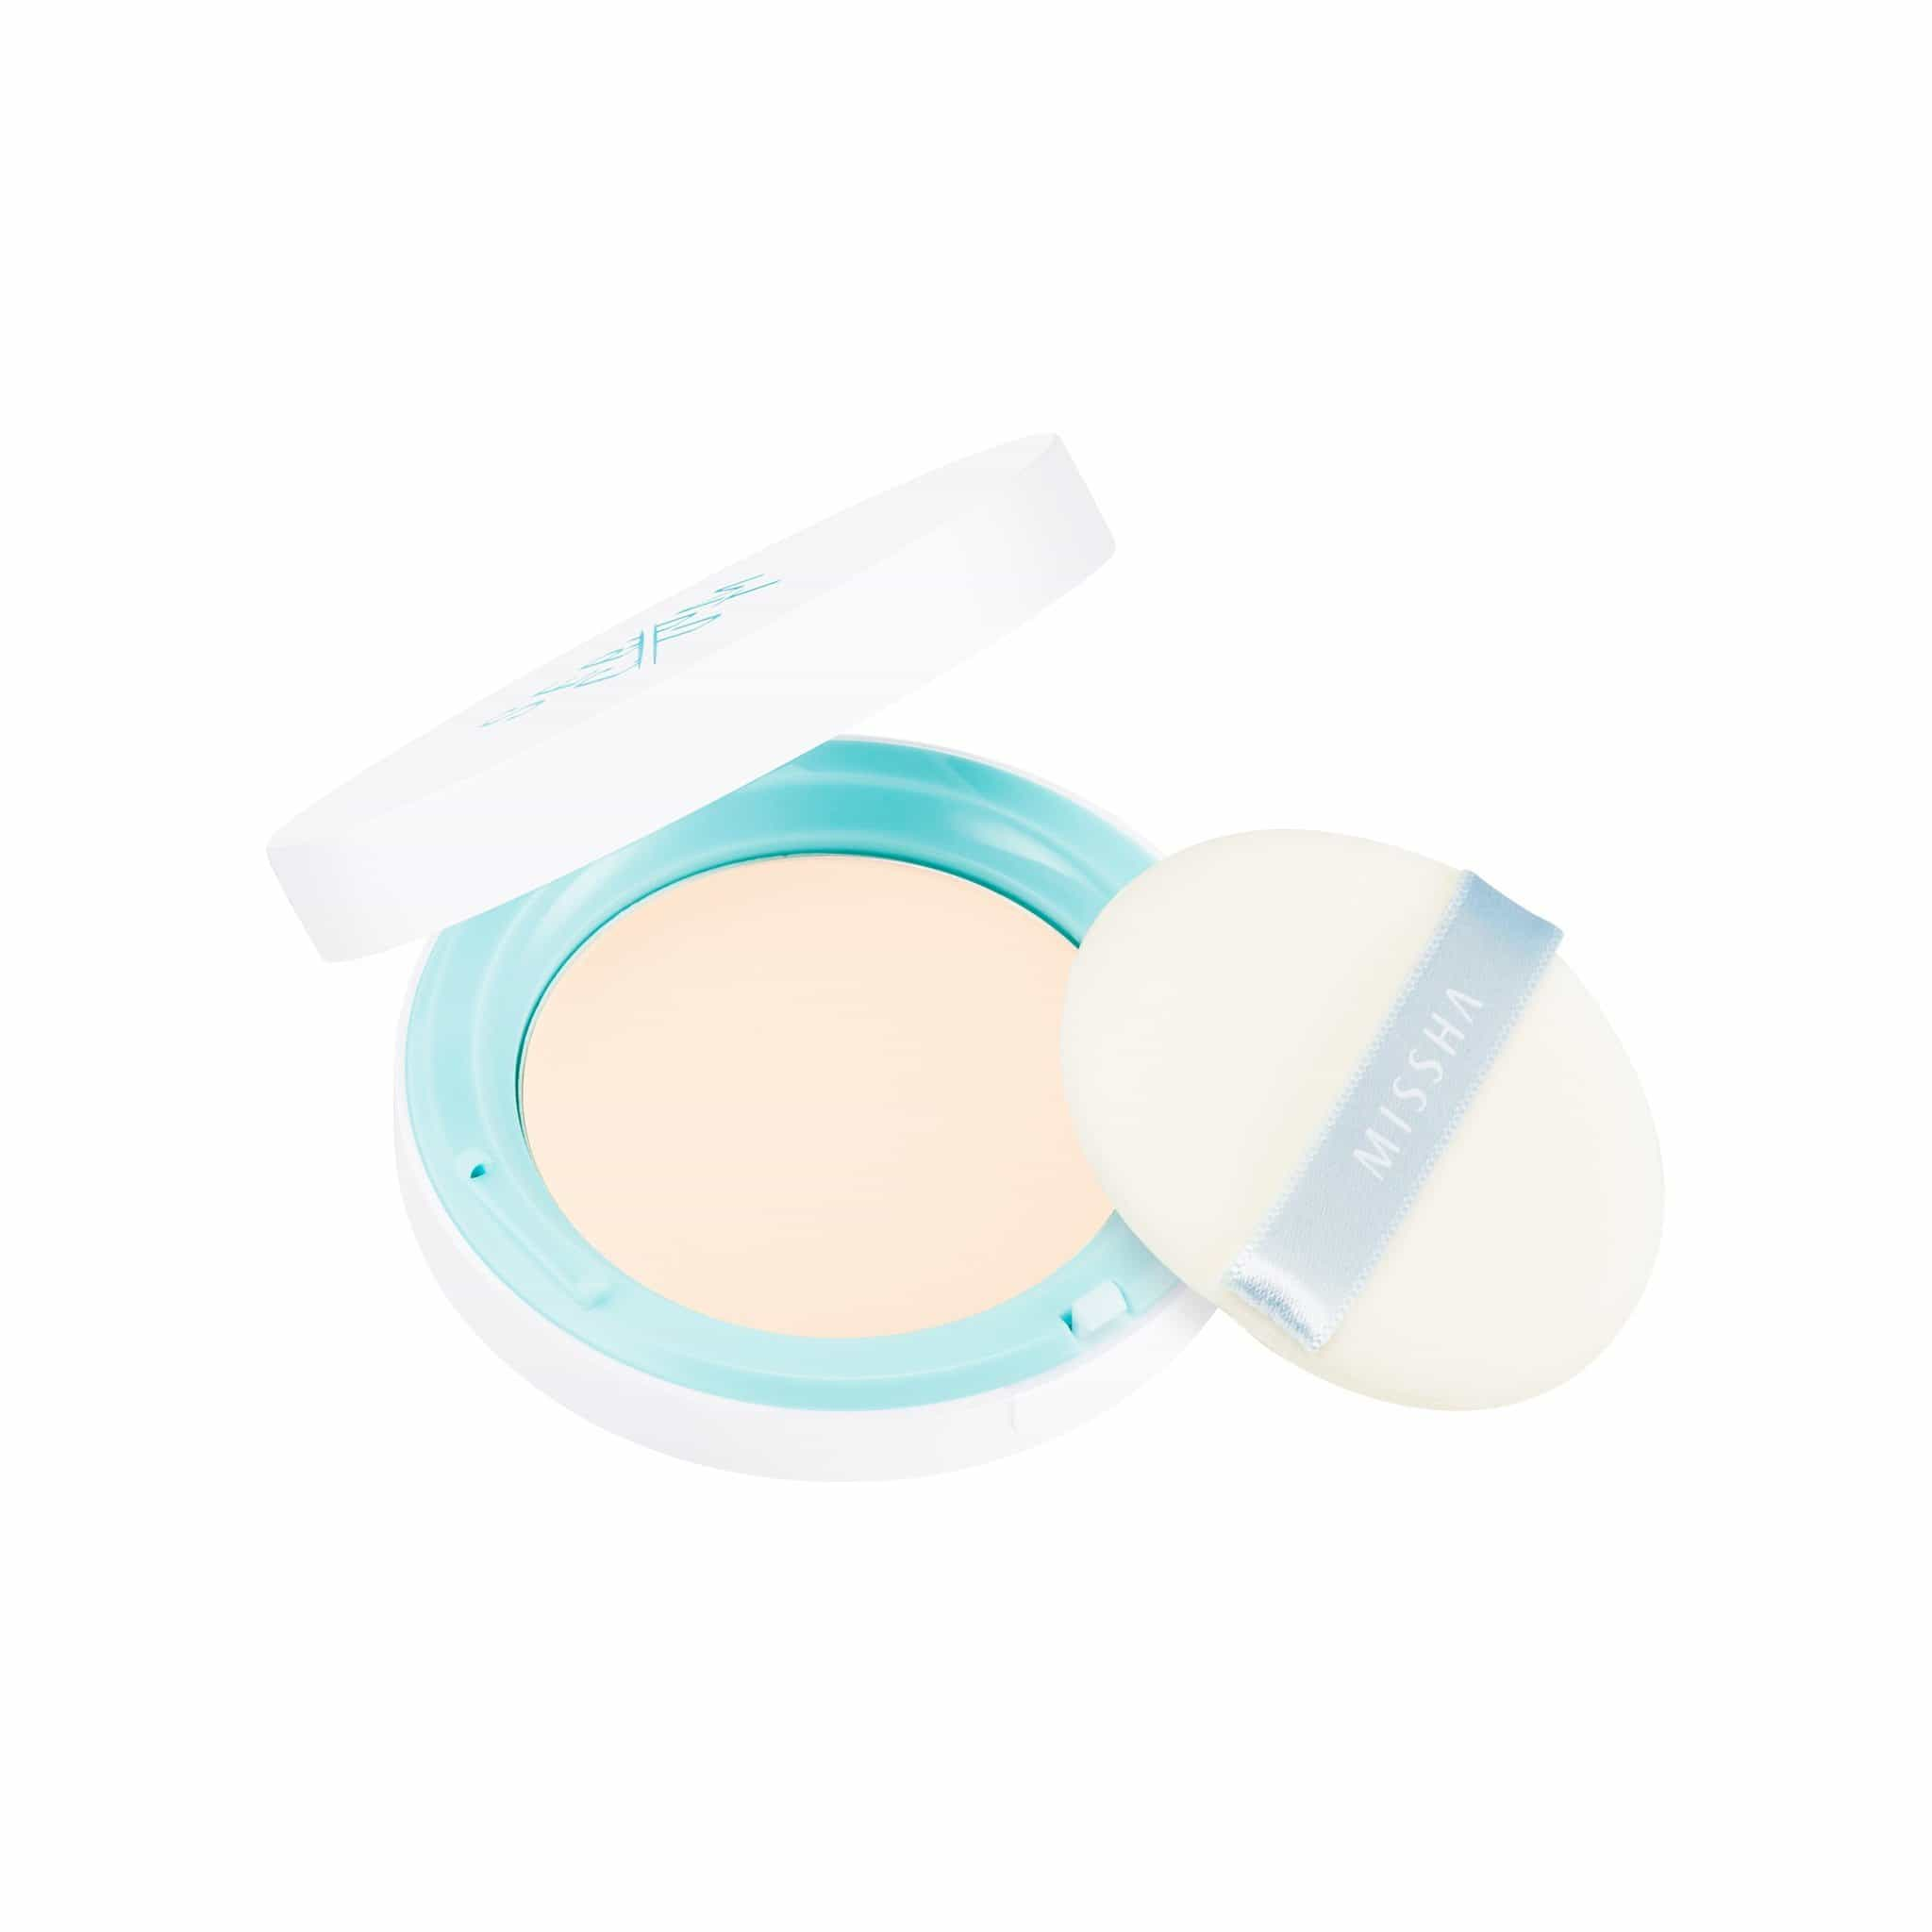 SEBUM-CUT POWDER PACT CLEAR - MISSHA